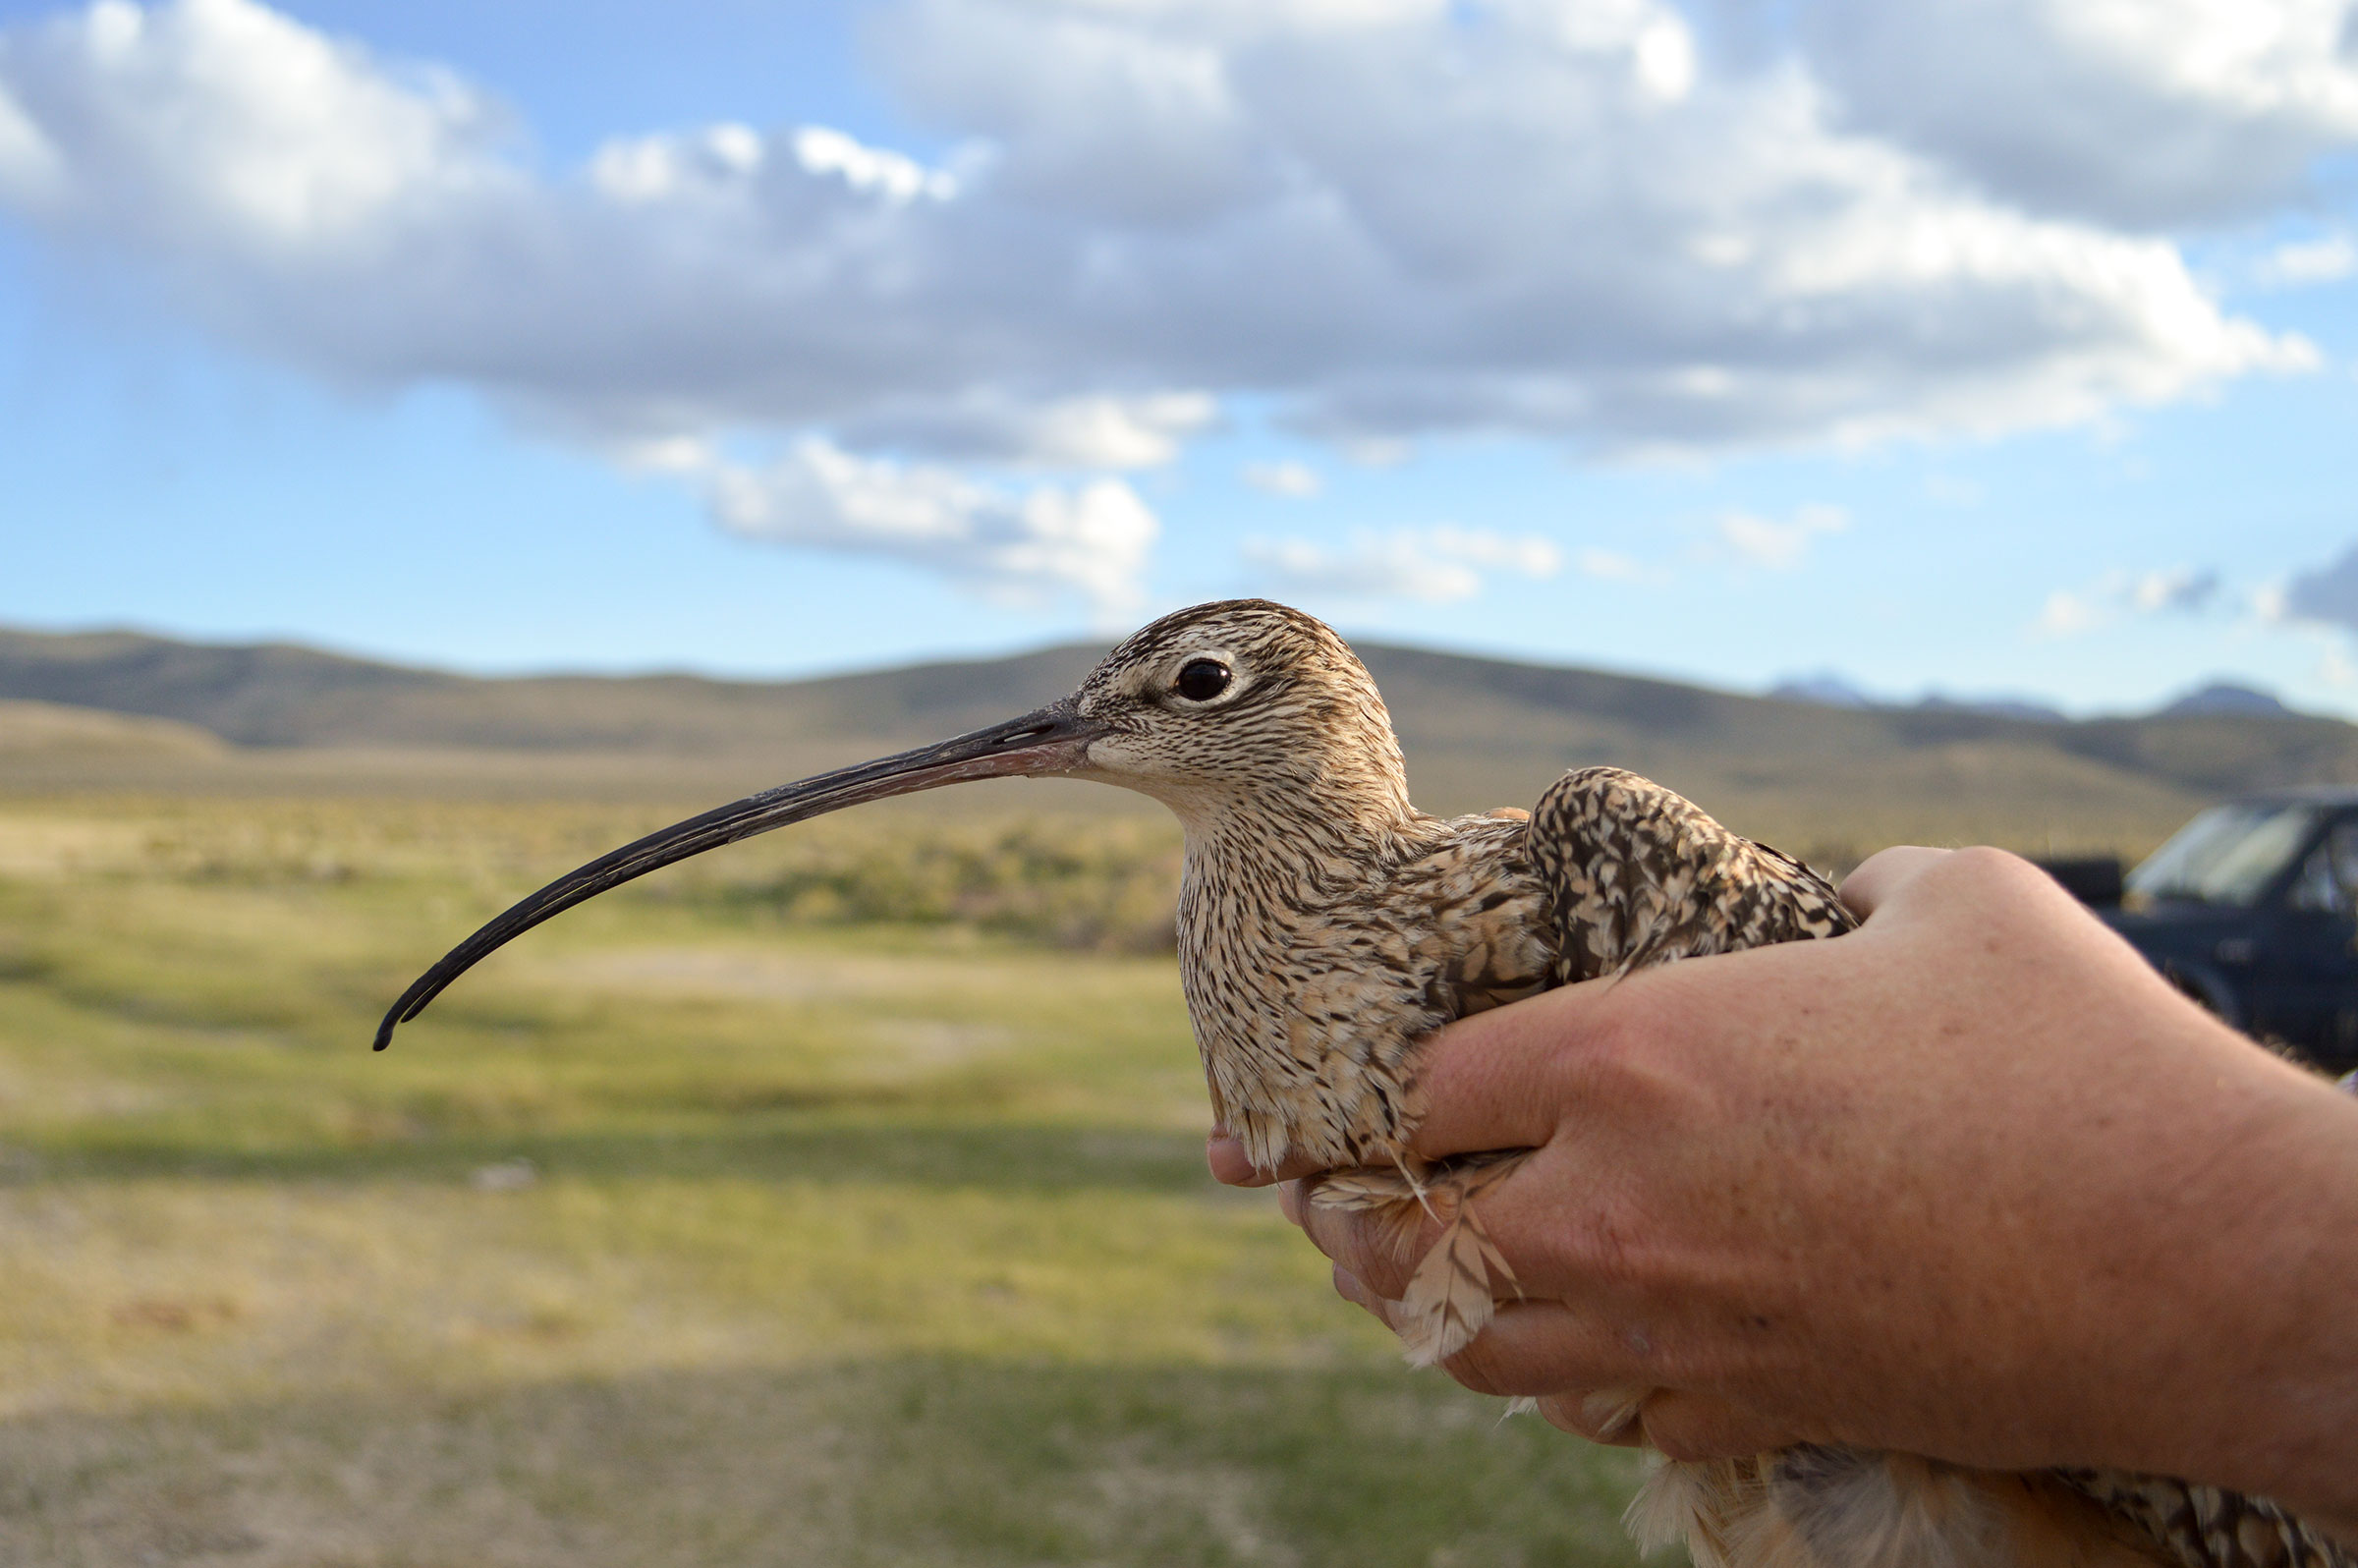 Borah, one of the Long-billed Curlews studied with a transmitter, just before release. Heidi Ware